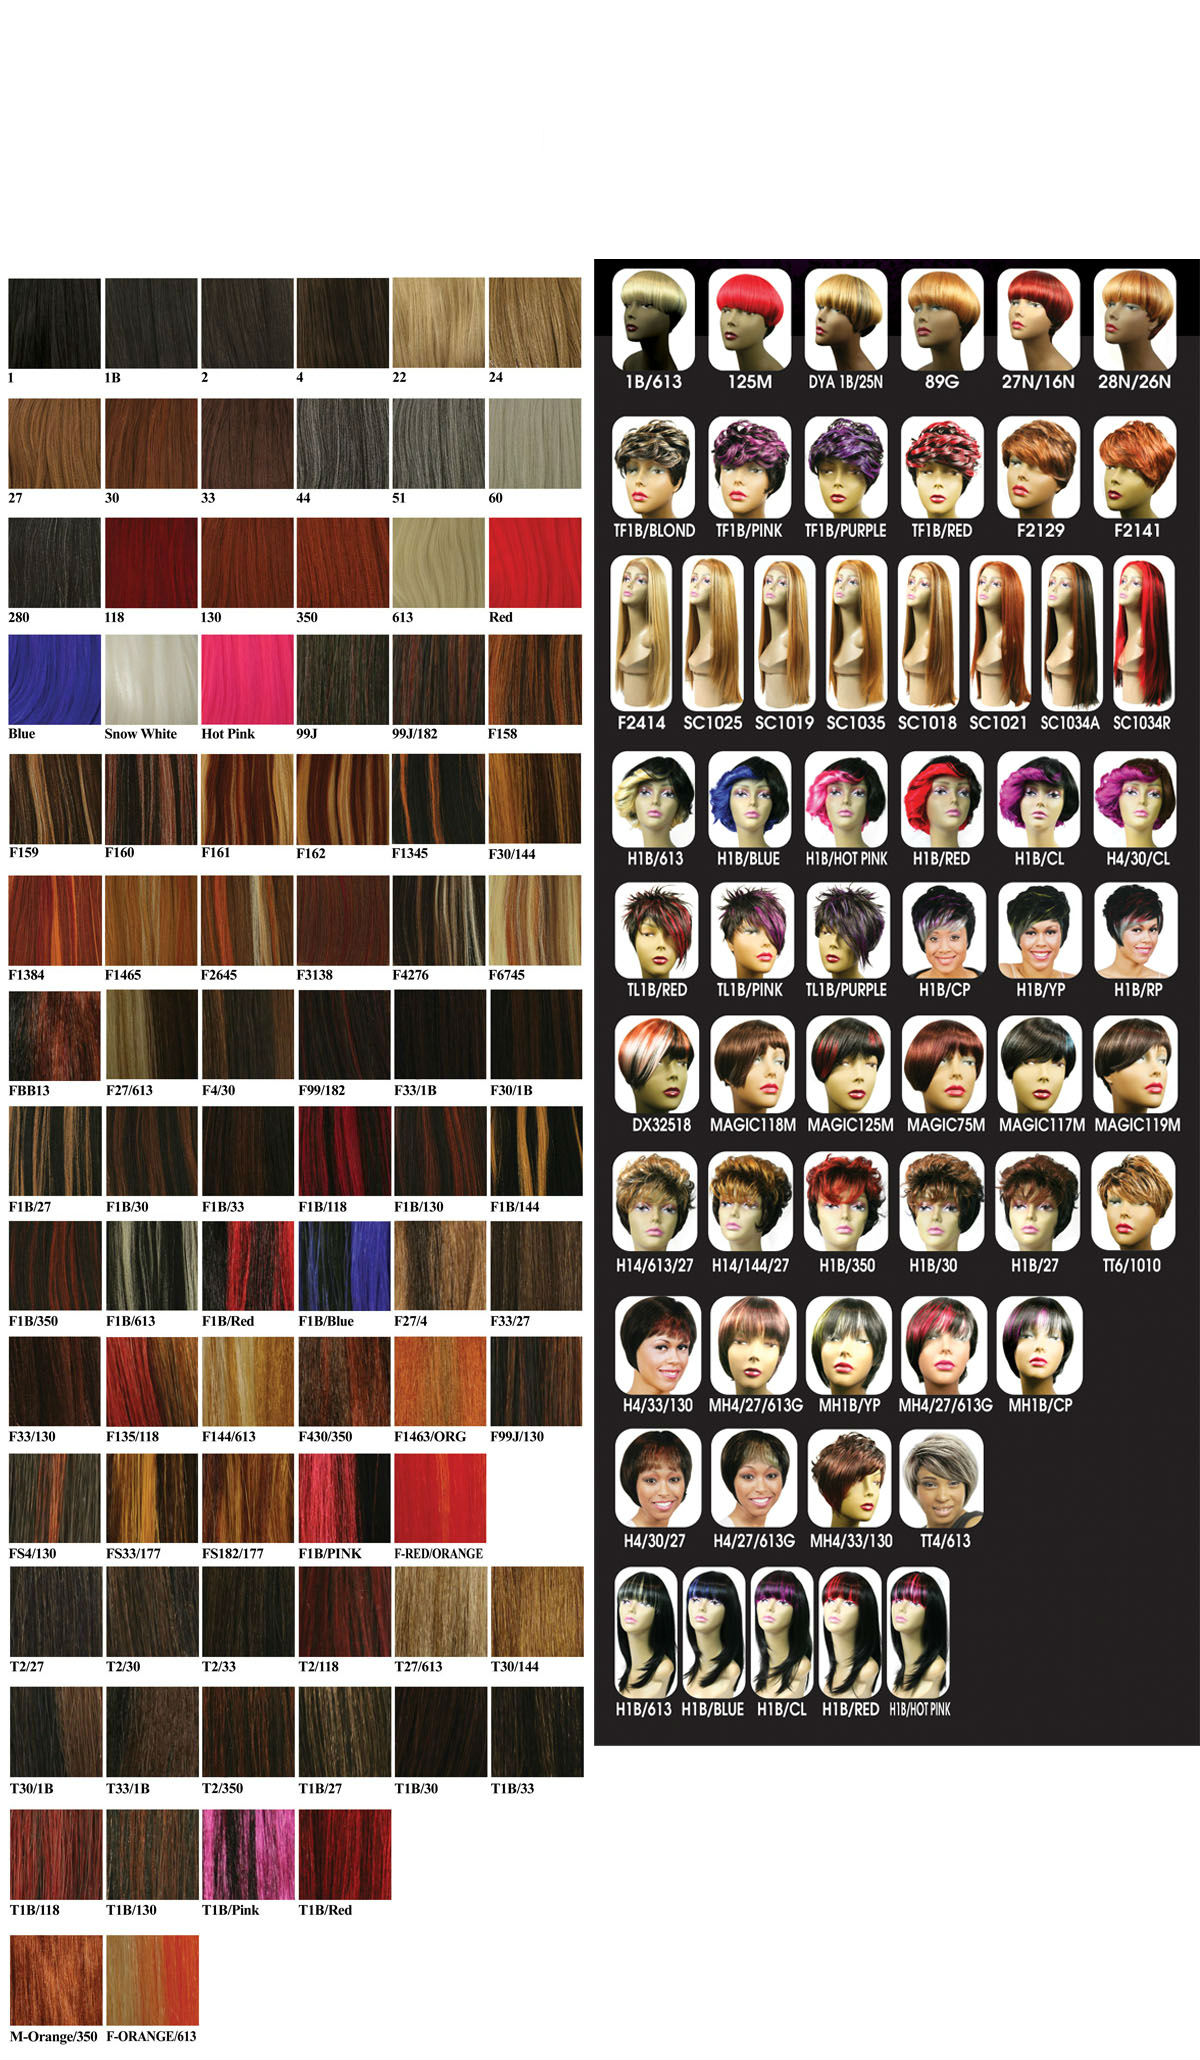 Hair Color Chart - Hair Extensions Color Choise, Wig Colors - Weave